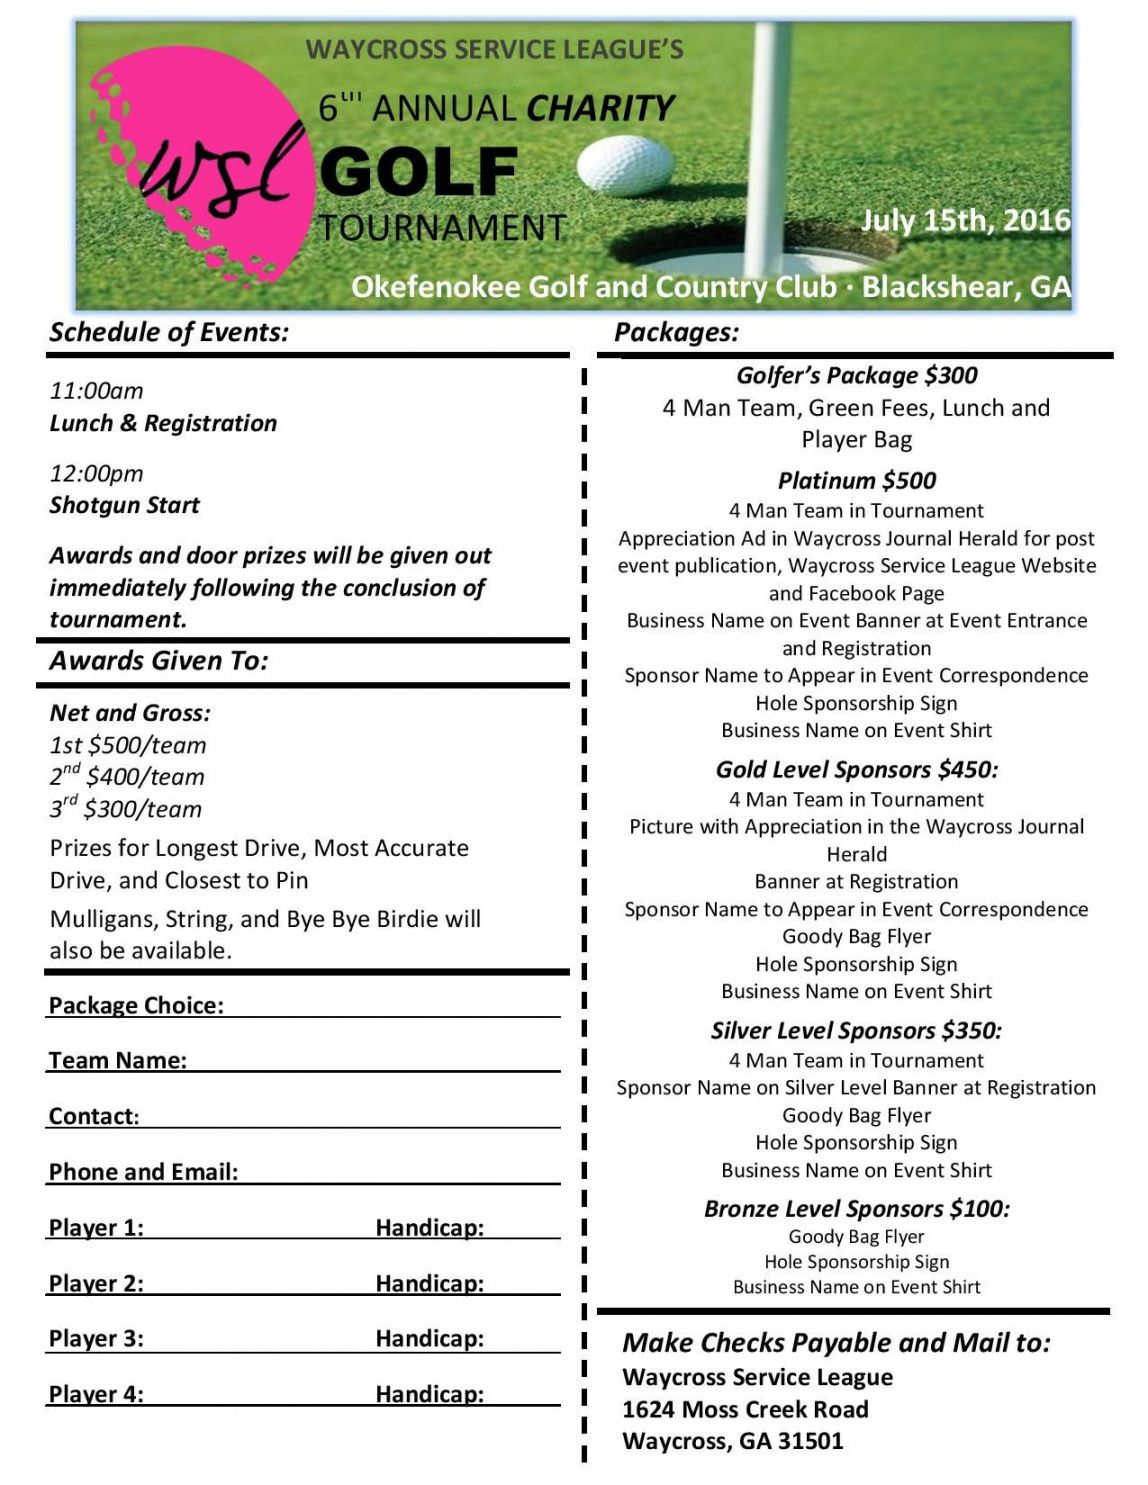 editable charity golf rnament planning checklist we will having our 6th golf tournament checklist template excel